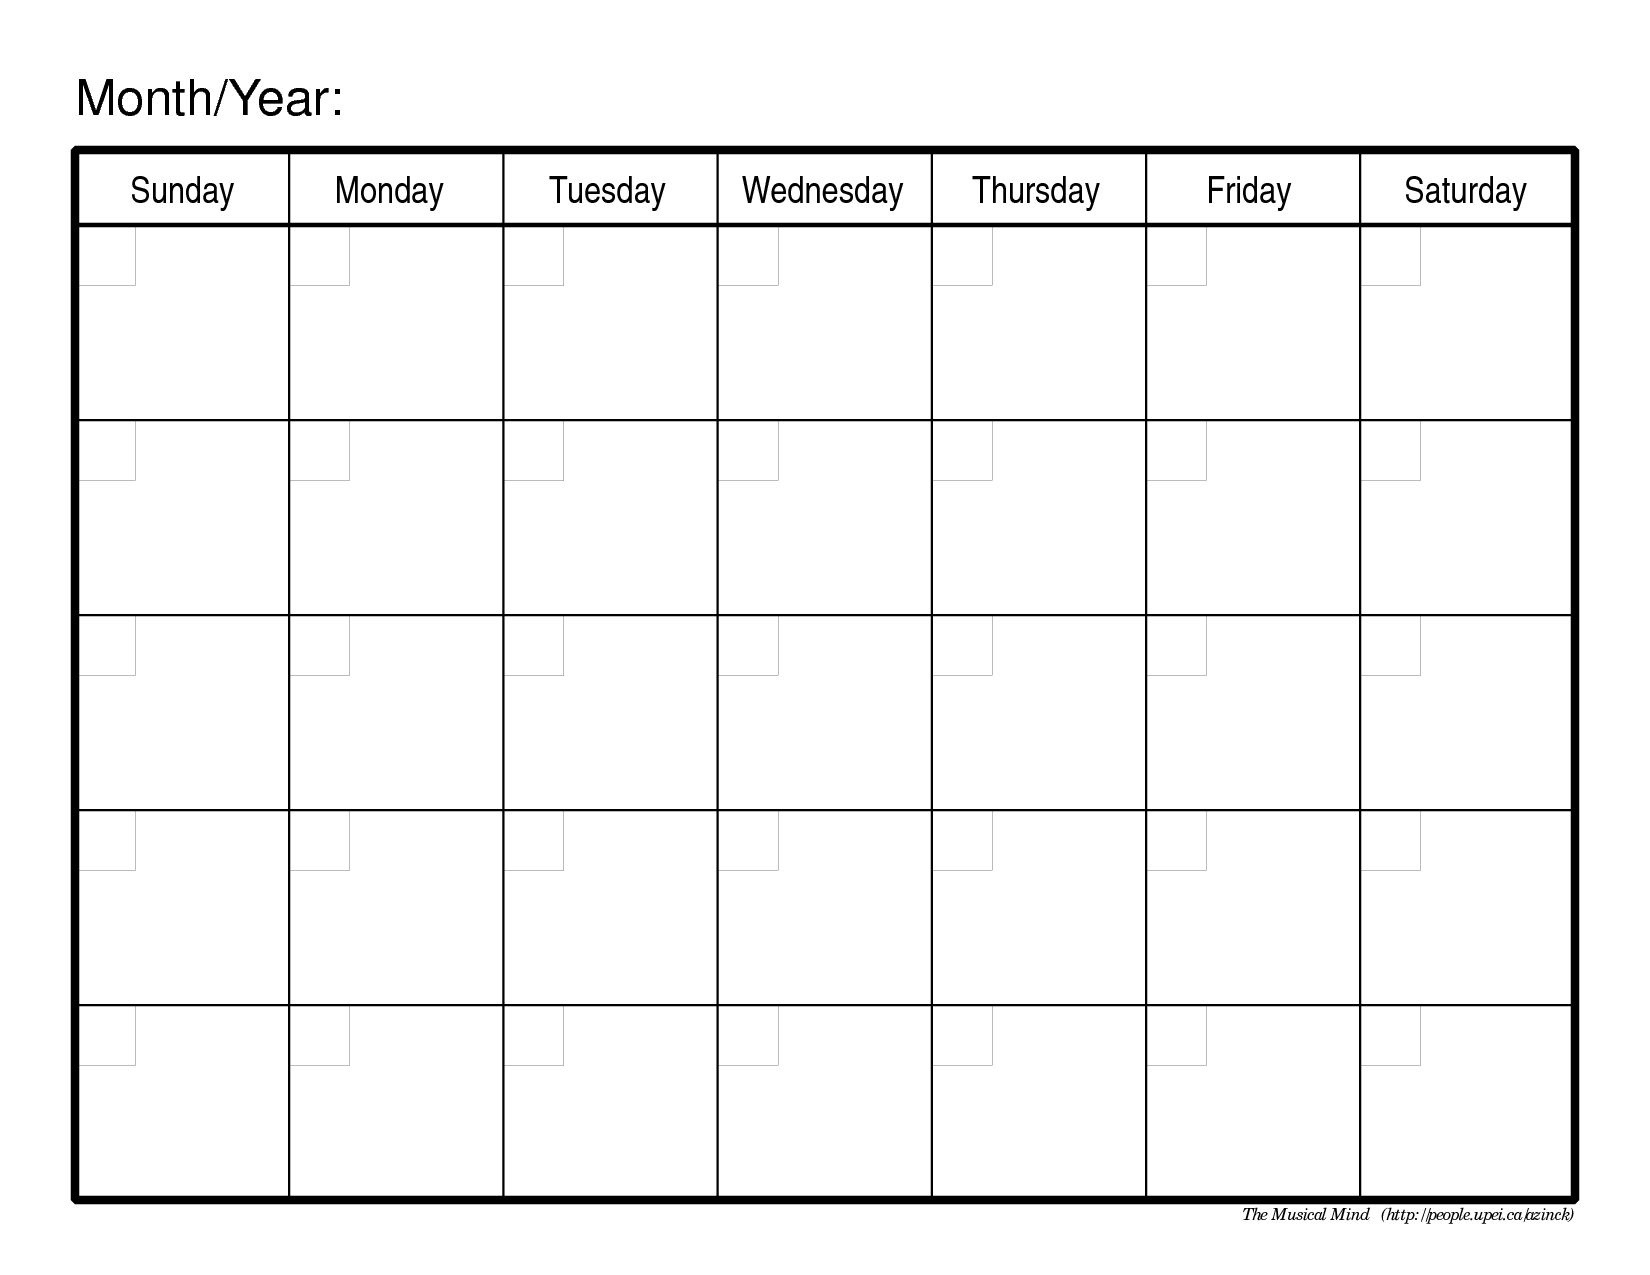 Monthly Calendar Template | Free Printable Calendar  Printable Monthly Calendar Templates